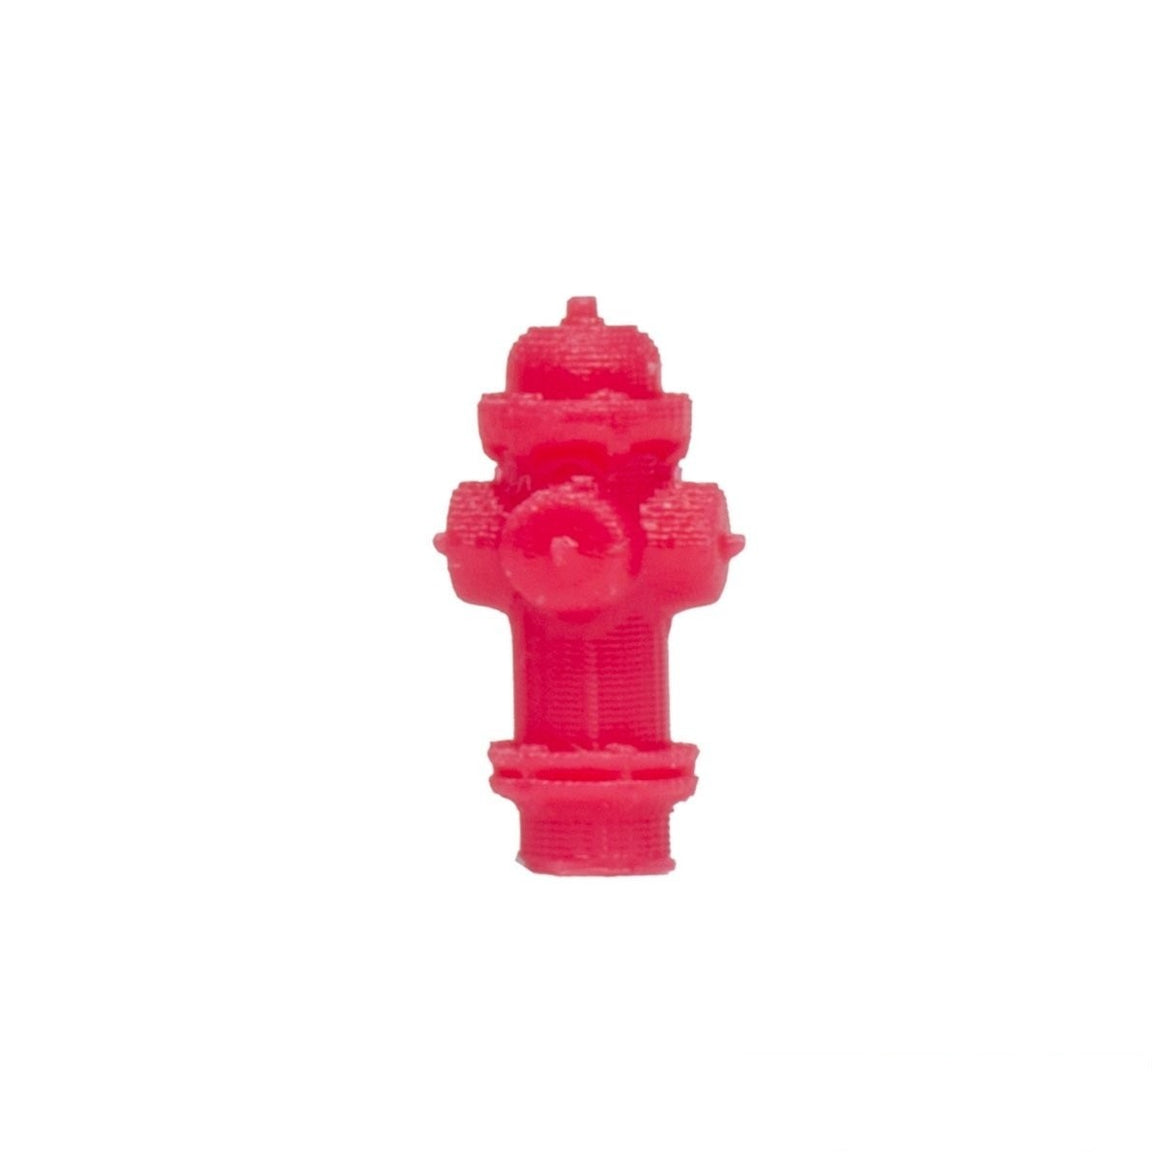 HO Scale: Fire Hydrants - 8 Pack